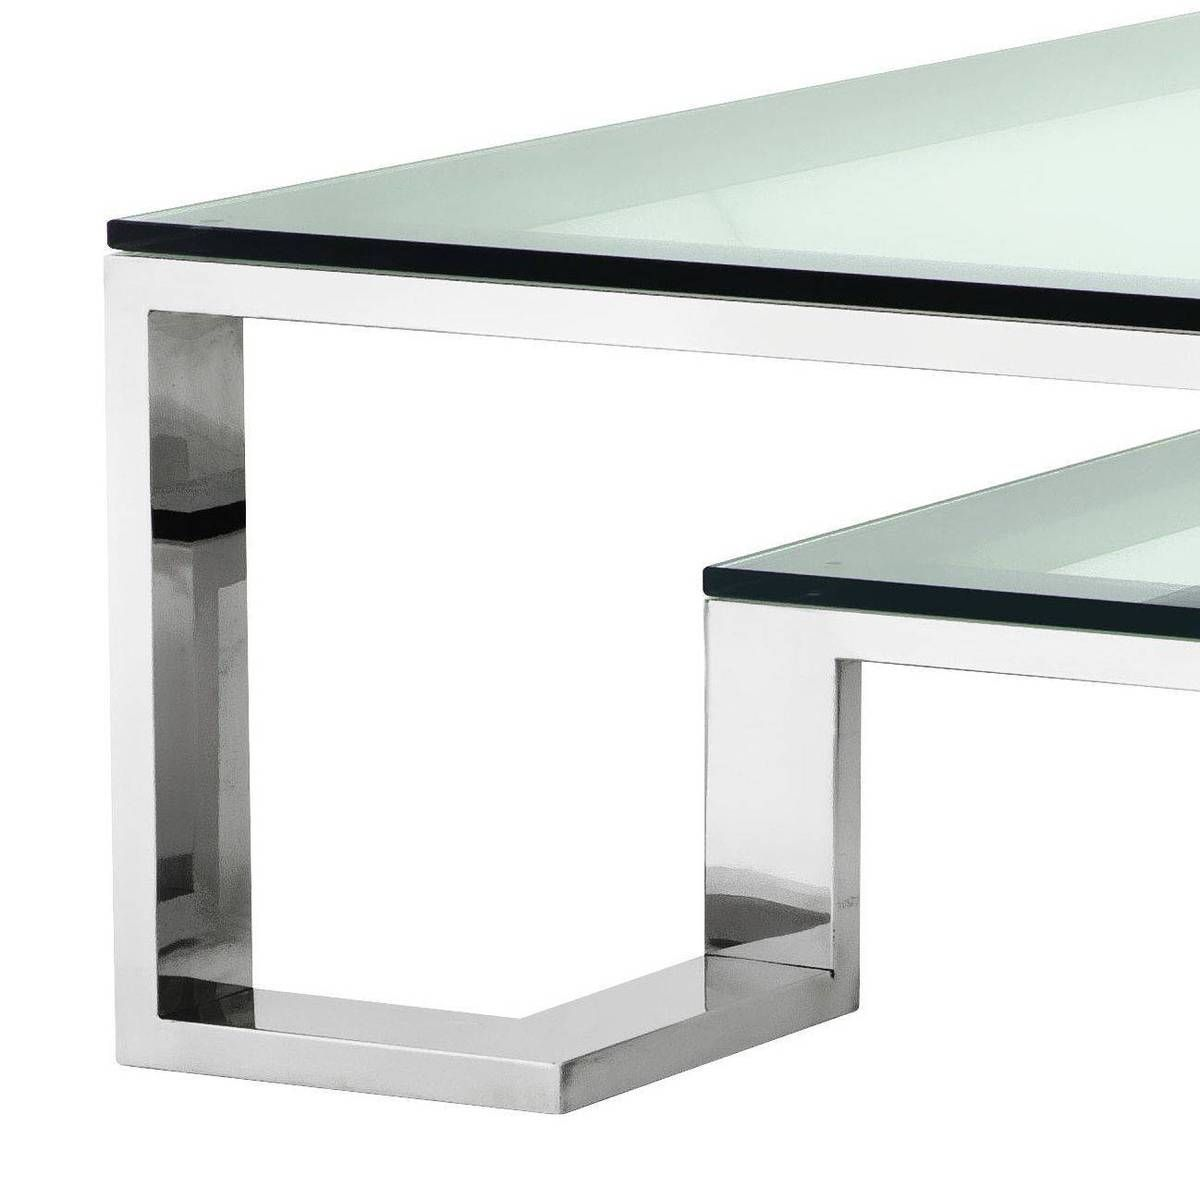 Two Level Coffee Table Eichholtz Huntington In 2021 Gold Coffee Table Home Coffee Tables Square Glass Coffee Table [ 1200 x 1200 Pixel ]